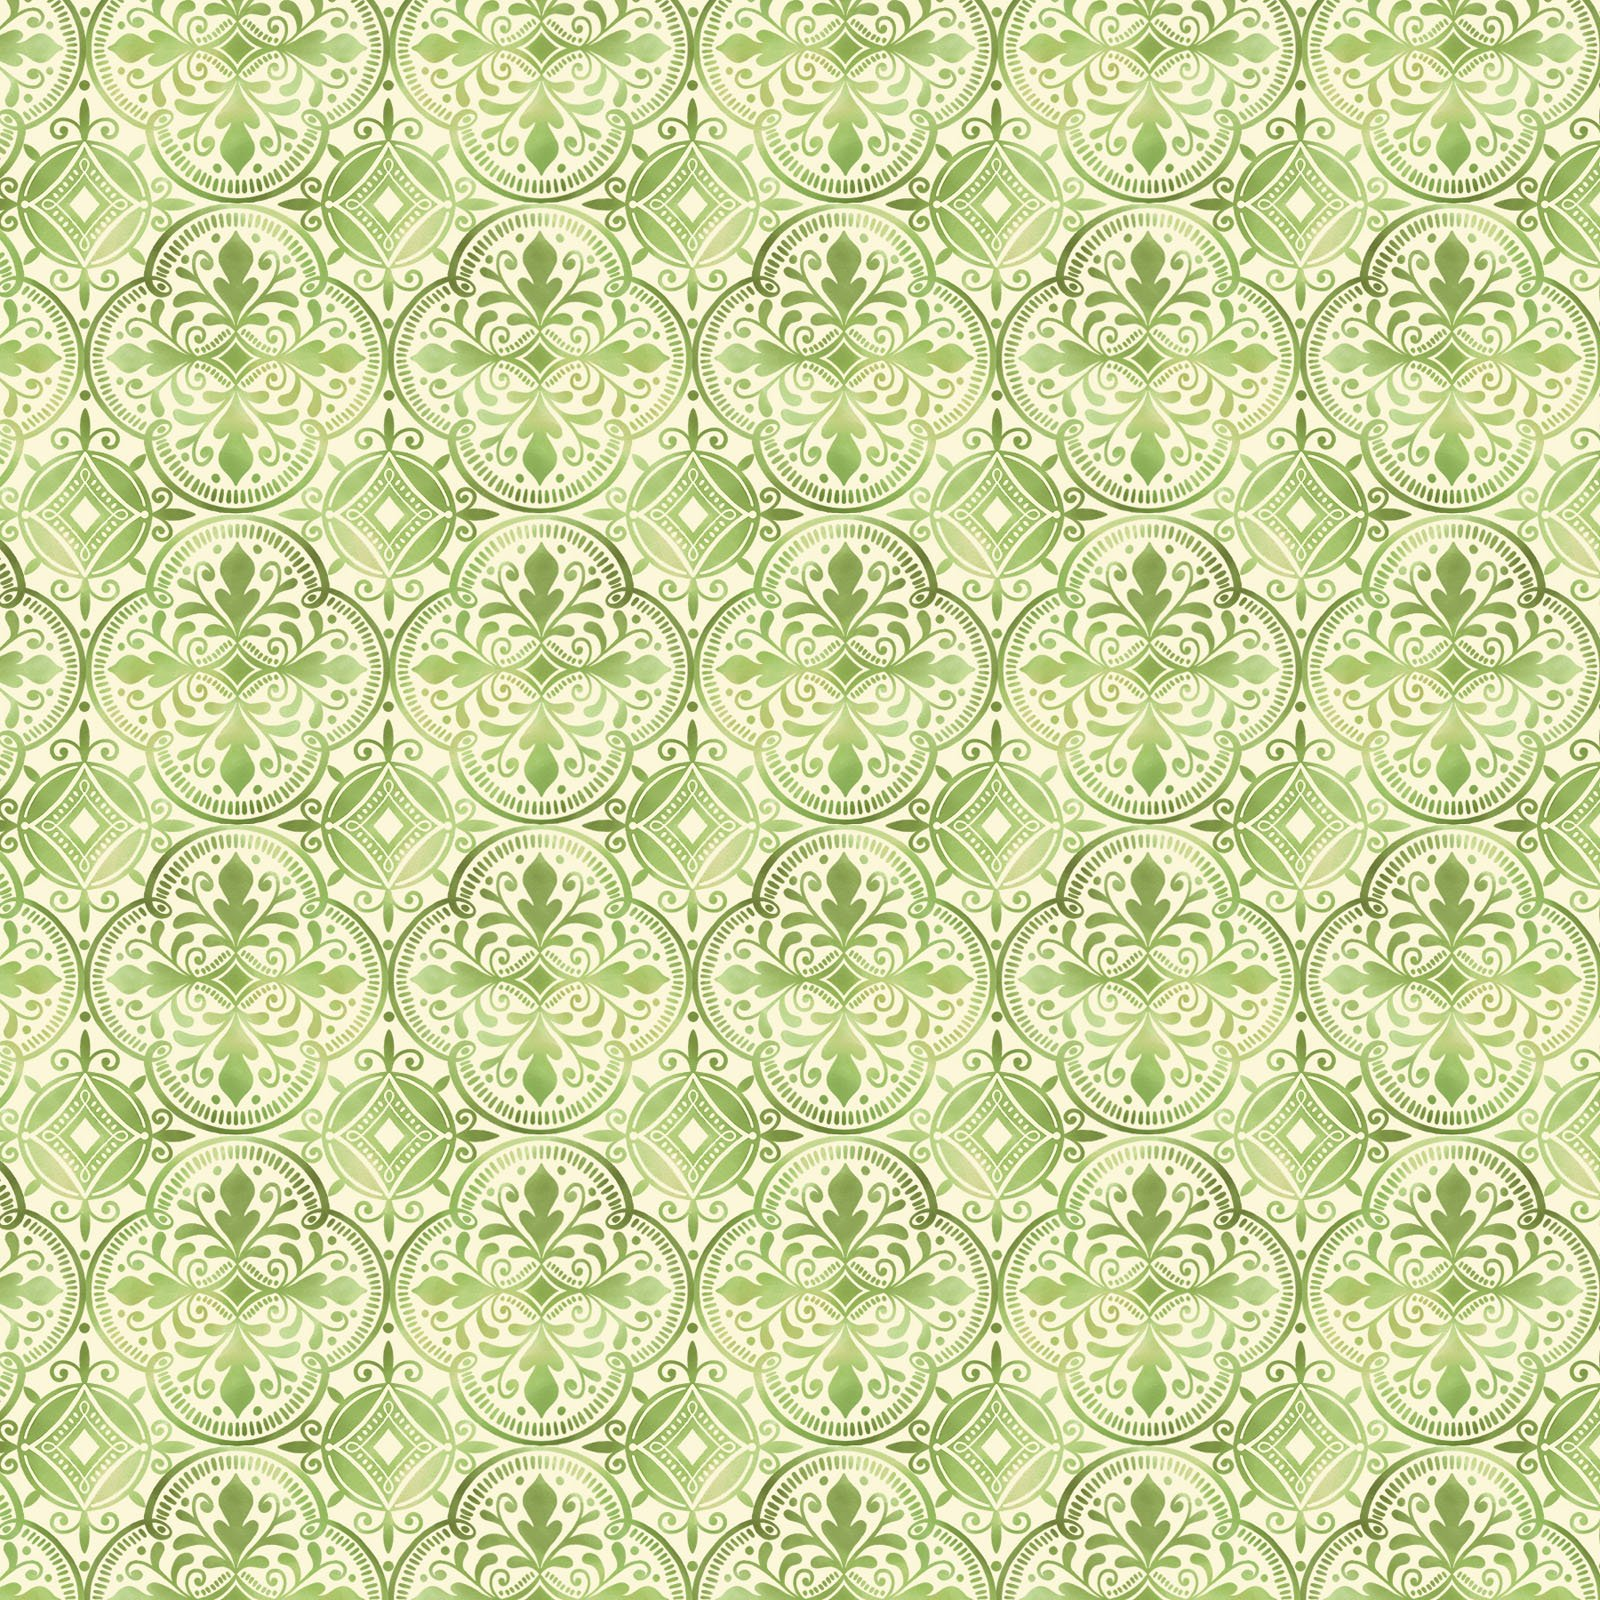 AMBR-4541 G - AMBROSIA BY NATALIE MILES TILES GREEN - ARRIVING IN NOVEMBER 2021